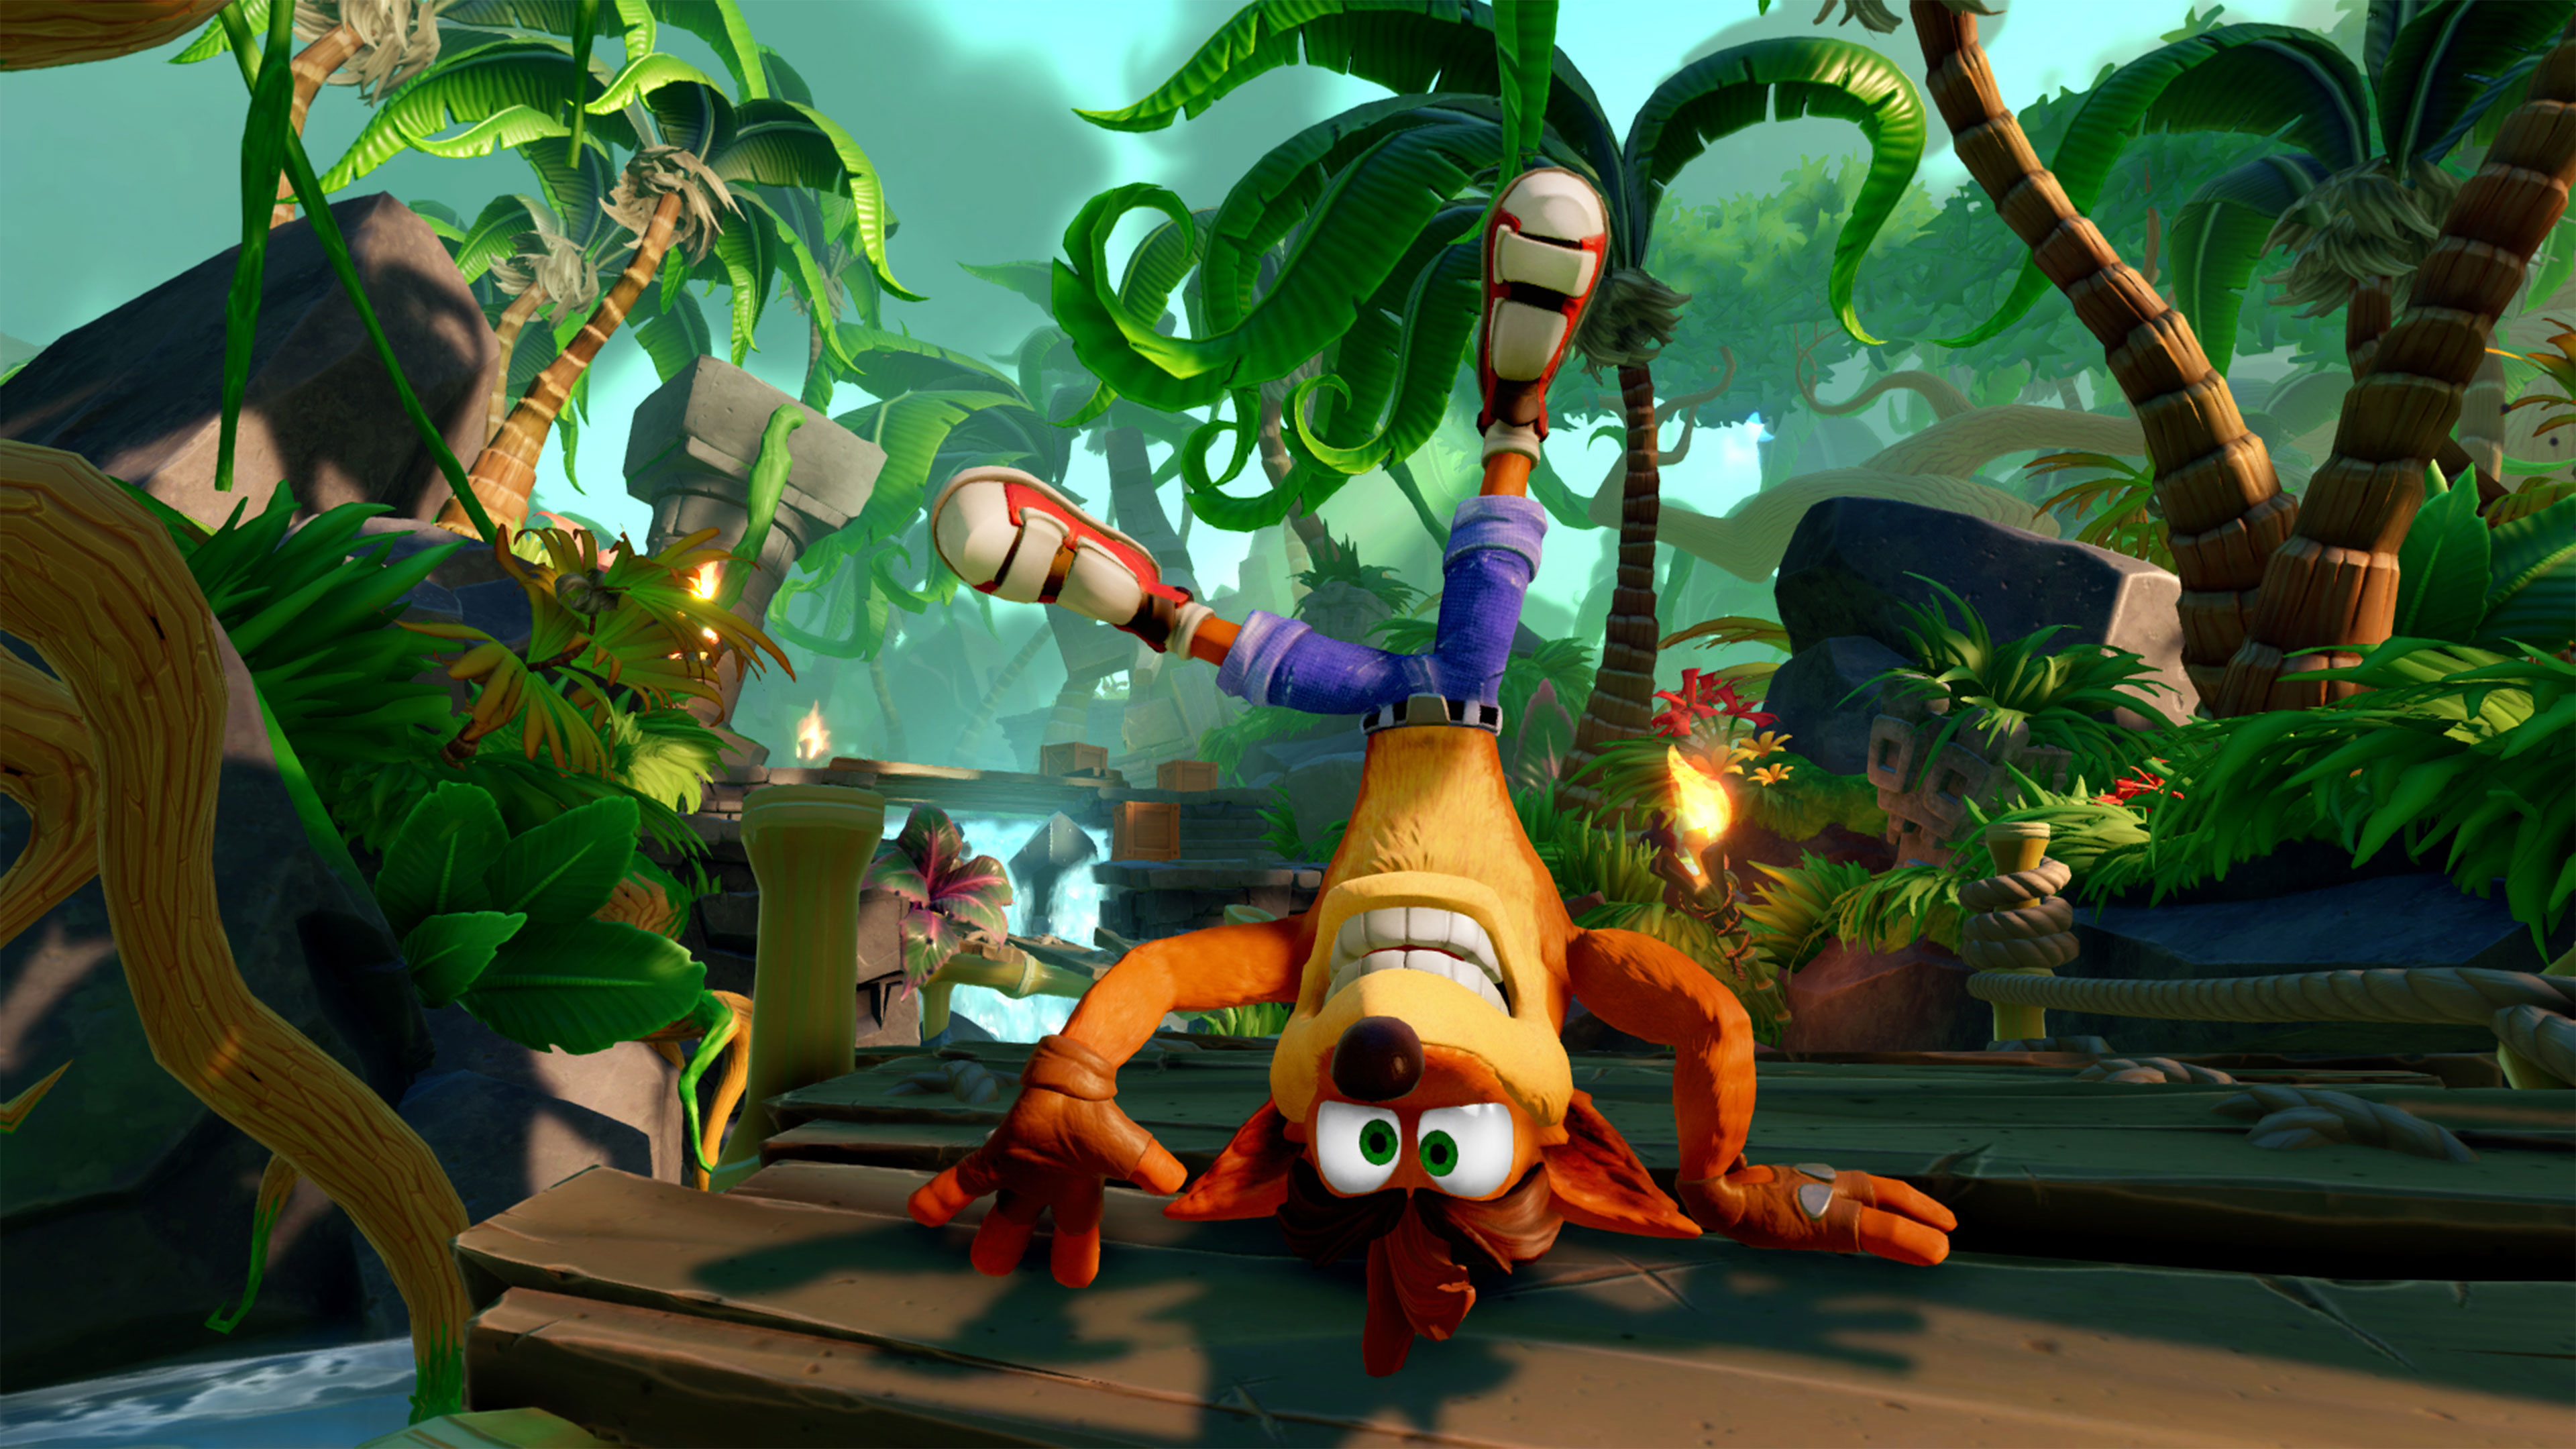 Crash Bandicoot Remastered Wallpapers In Ultra Hd 4k Gameranx